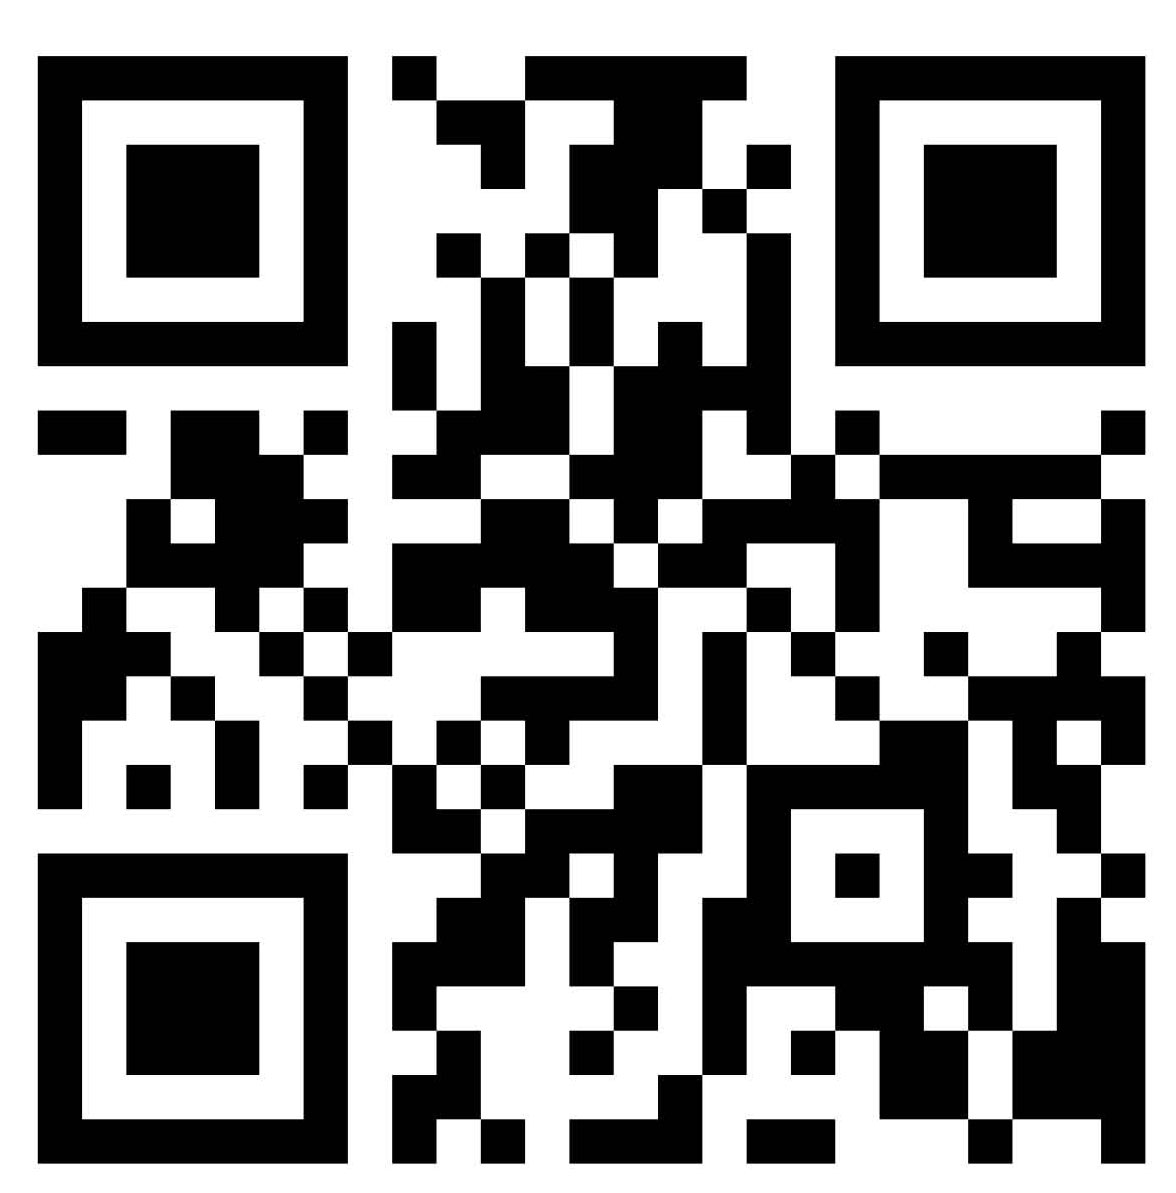 qr code facebook - photo #16